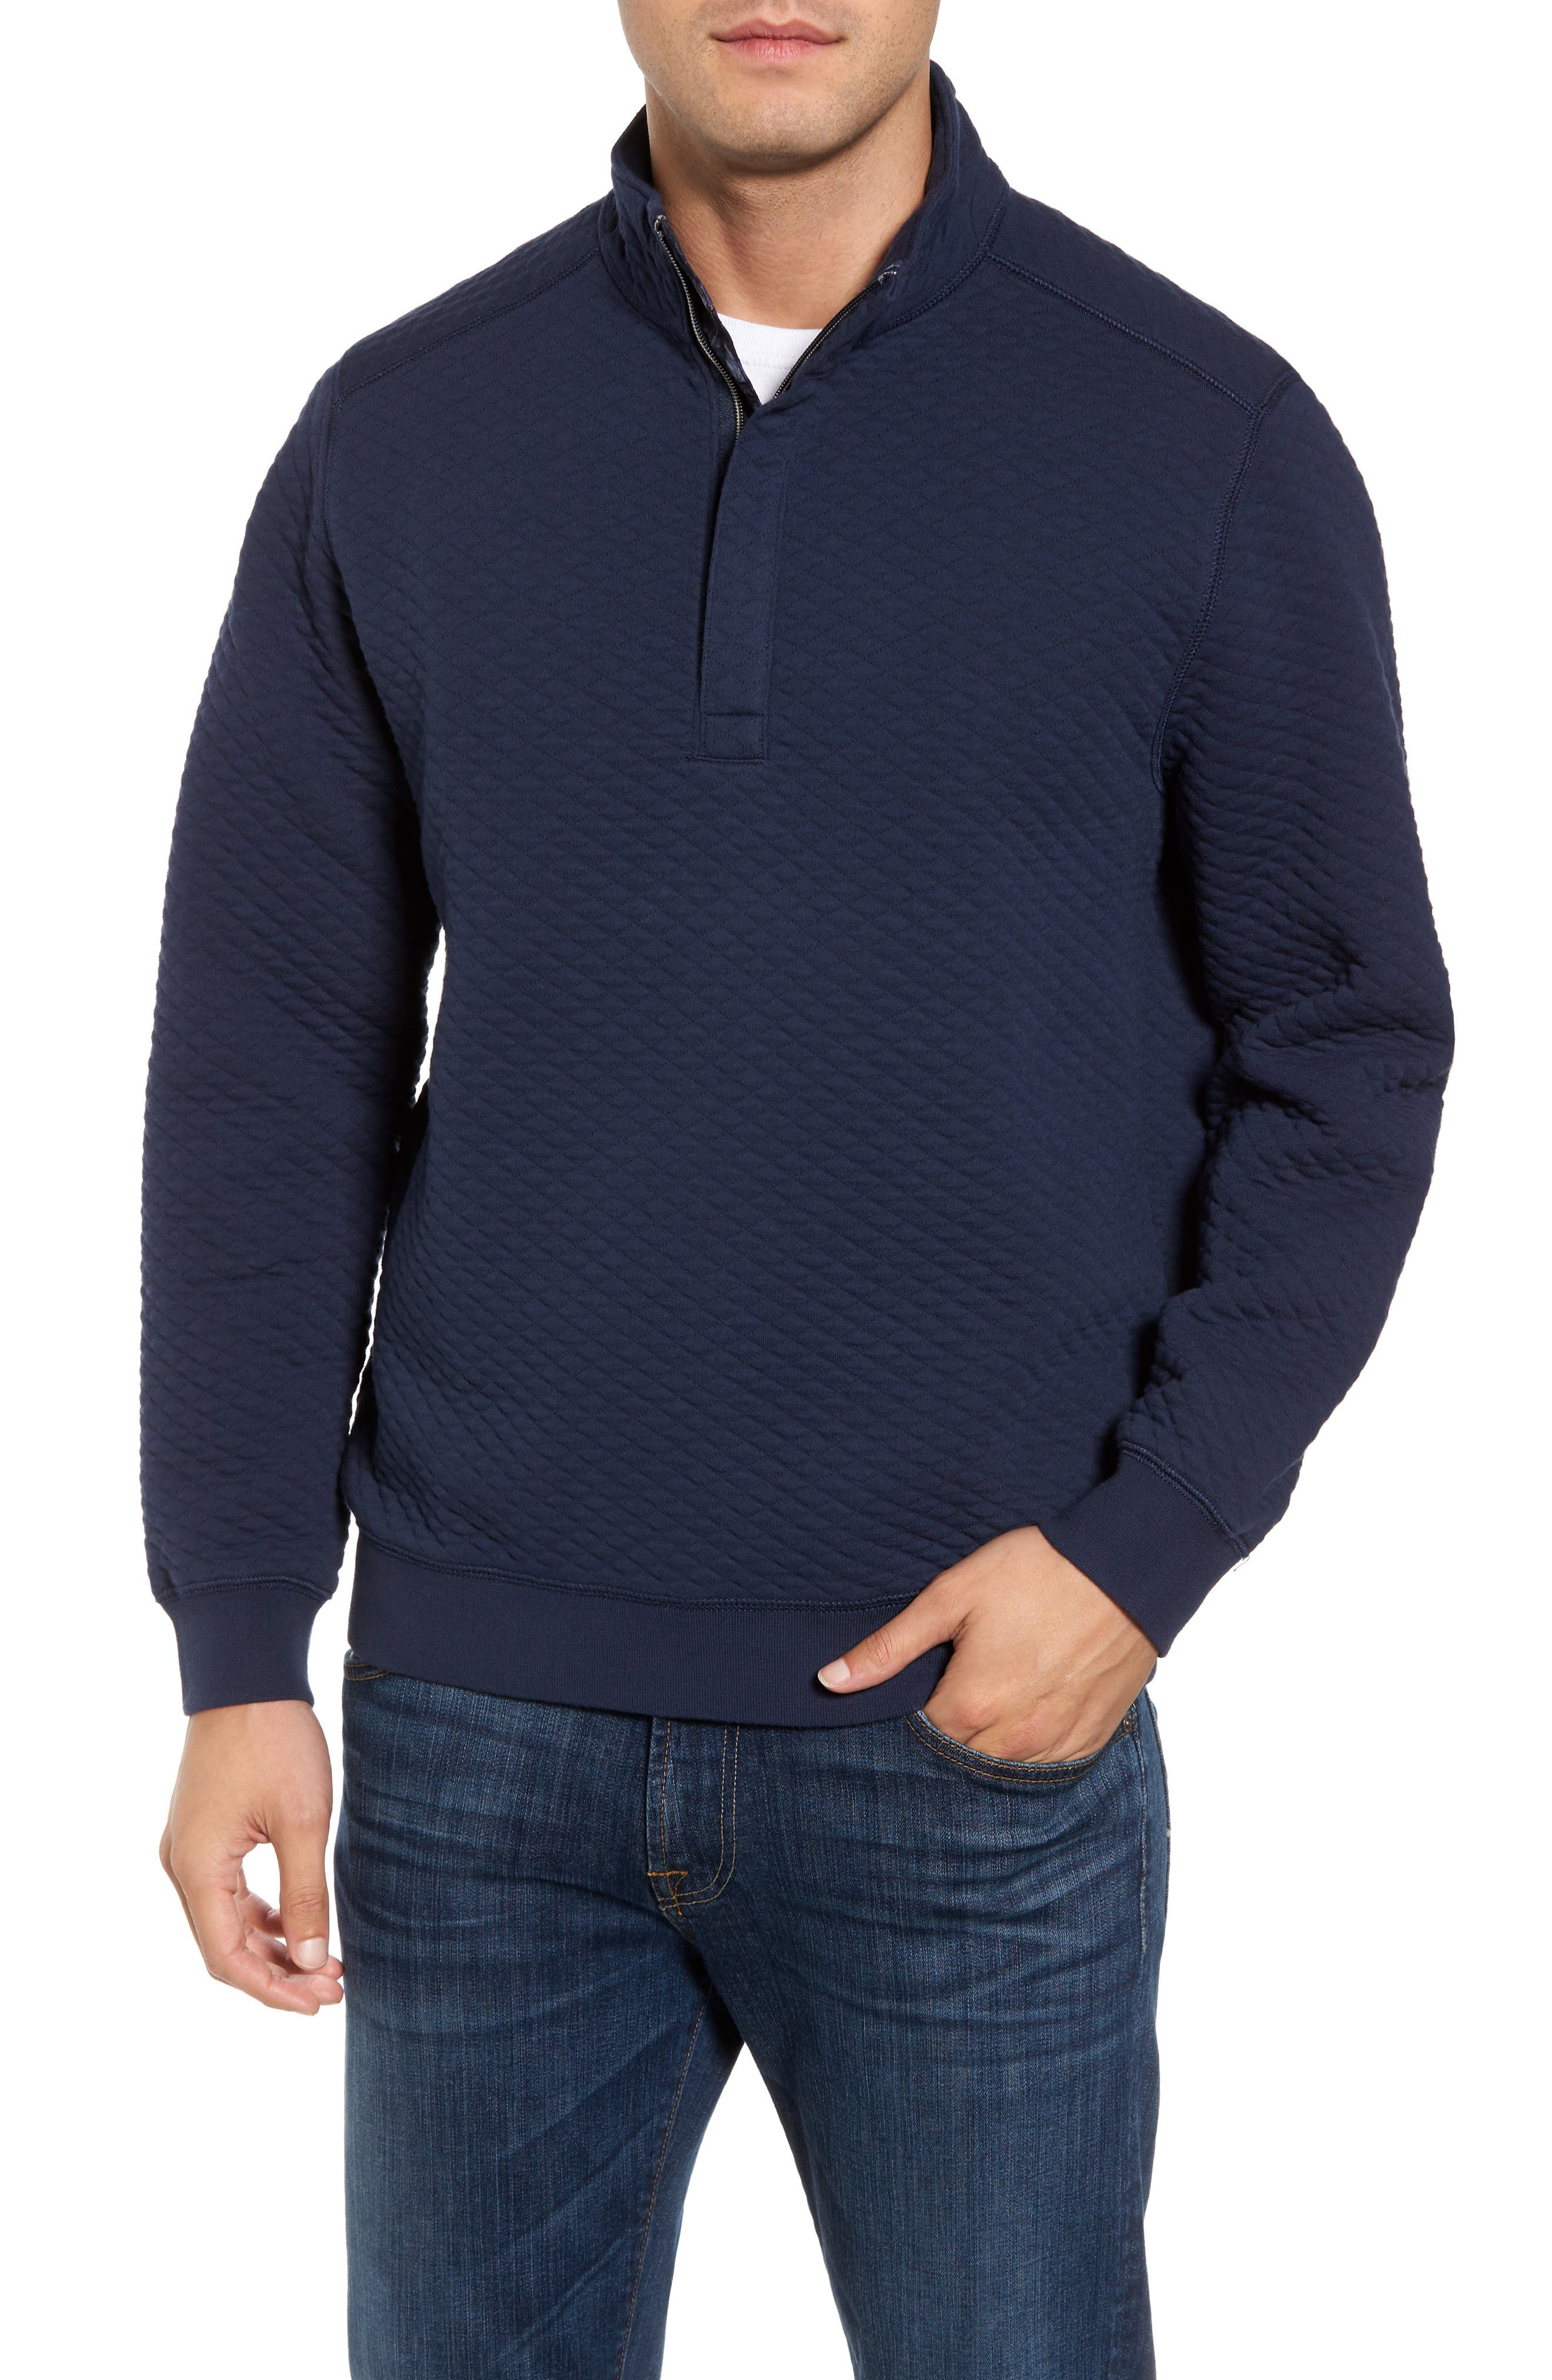 Main Image - Tommy Bahama Quiltessential Standard Fit Quarter Zip Pullover